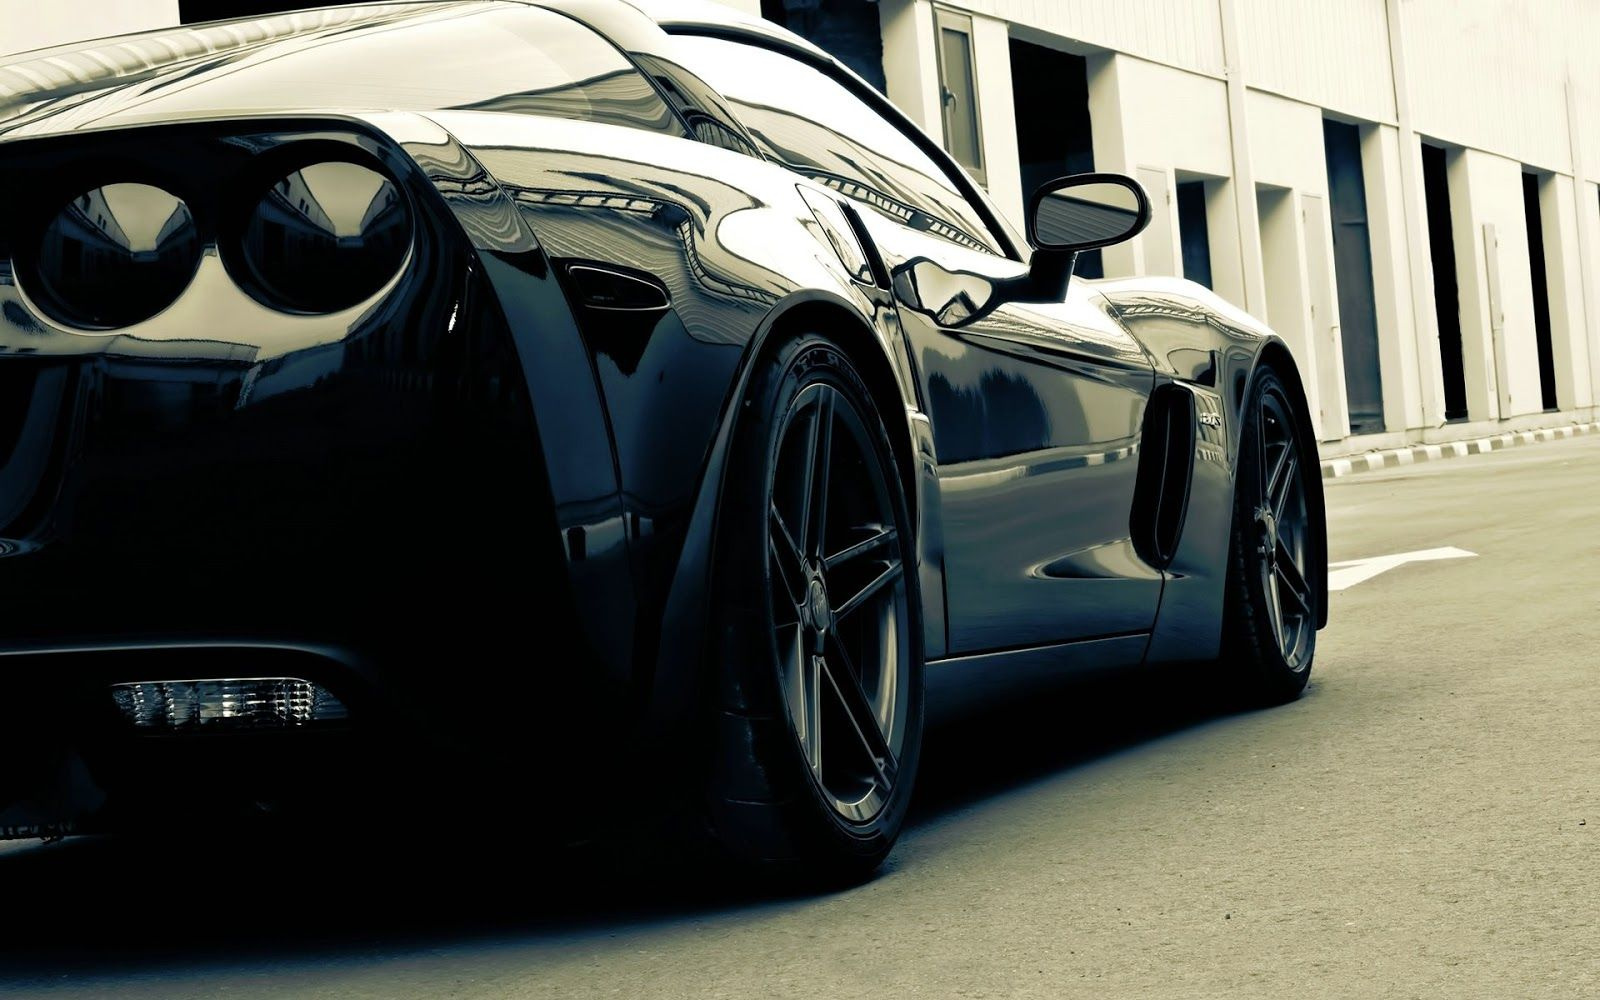 Sports Car Hd Wallpapers Top Free Sports Car Hd Backgrounds Wallpaperaccess